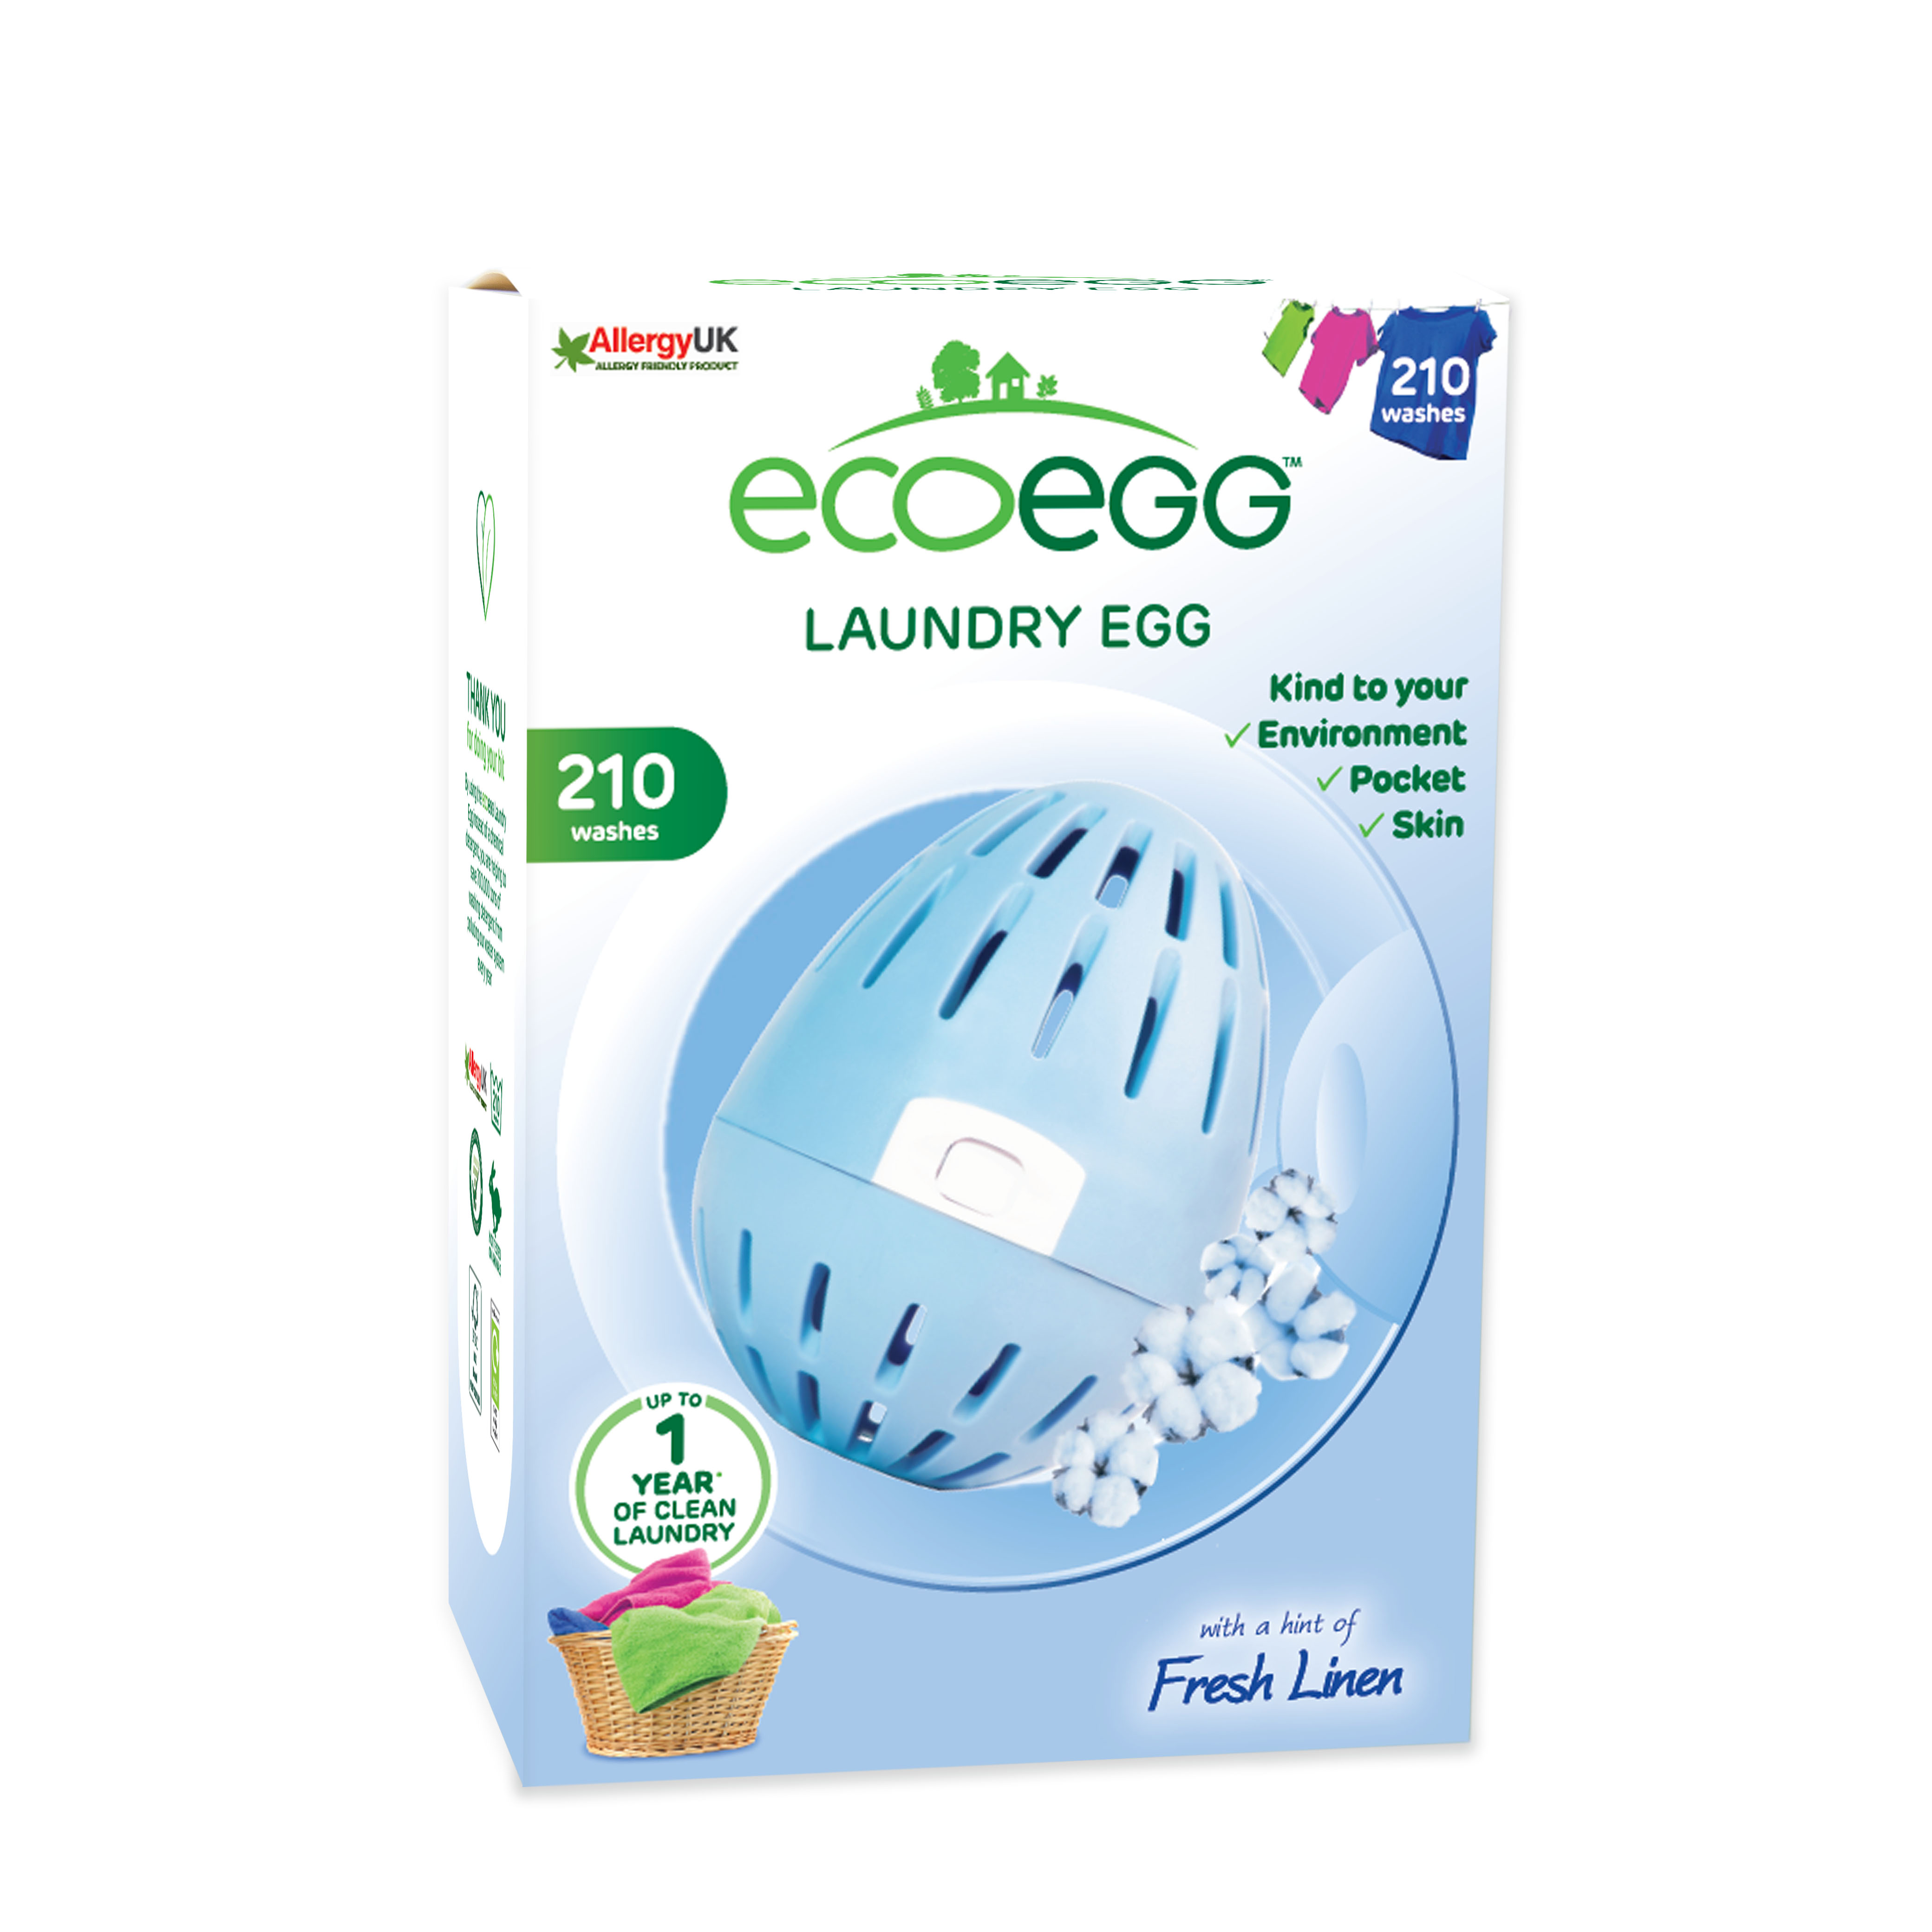 ECOEGG- Laundry Egg